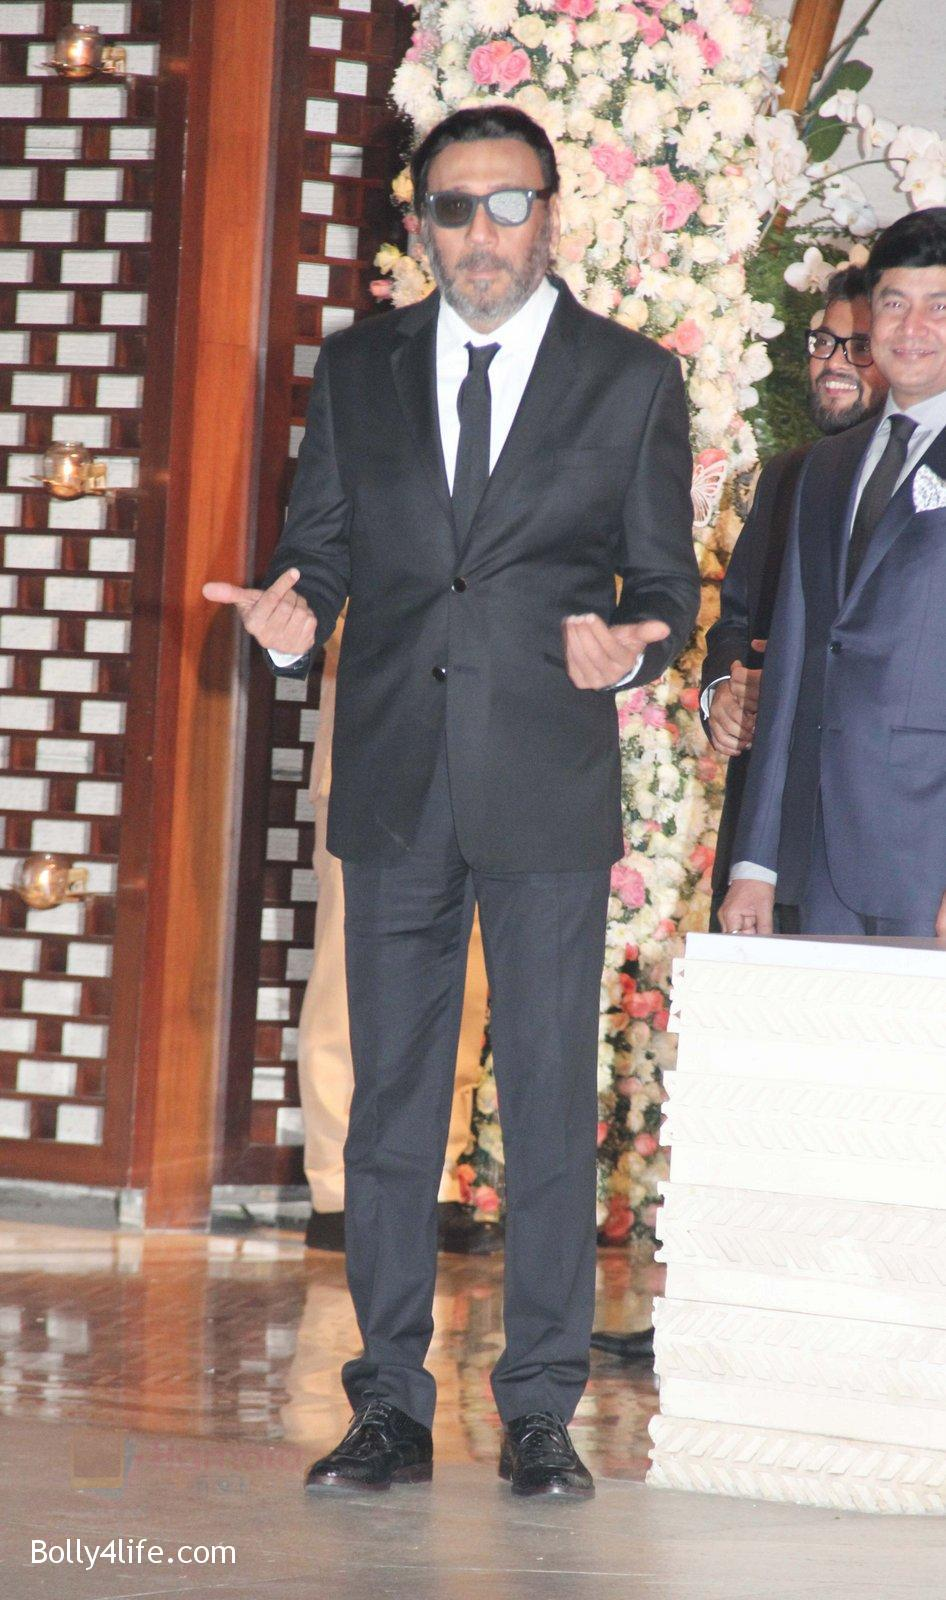 Jackie-Shroff-at-the-Ambanis-wedding-party-of-their-niece-Isheta-Salgaoncar-2.jpg